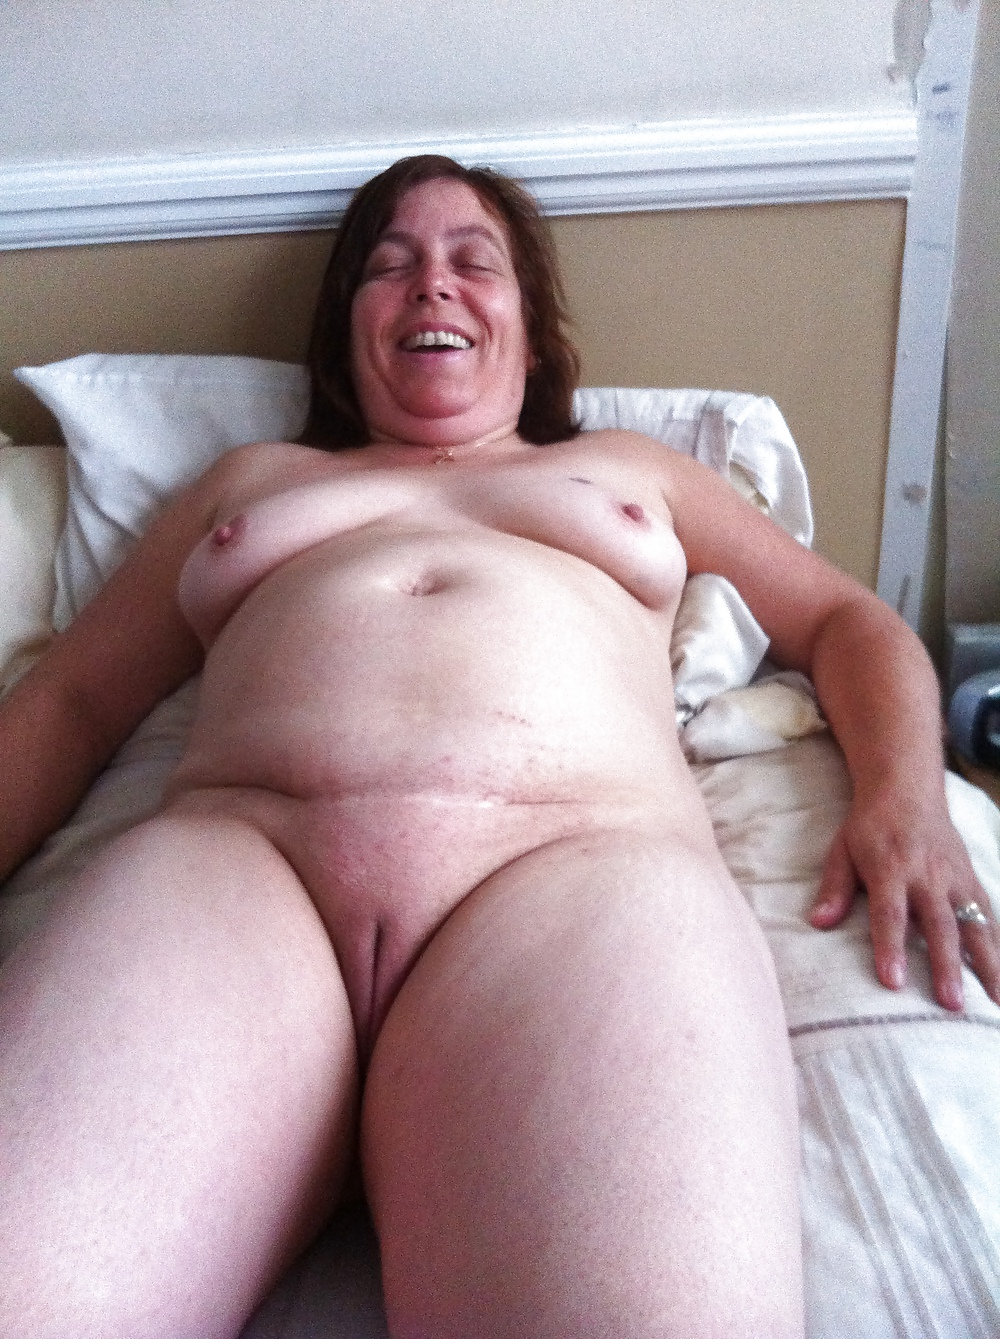 Photos Of Unaware Chubby Naked Wife